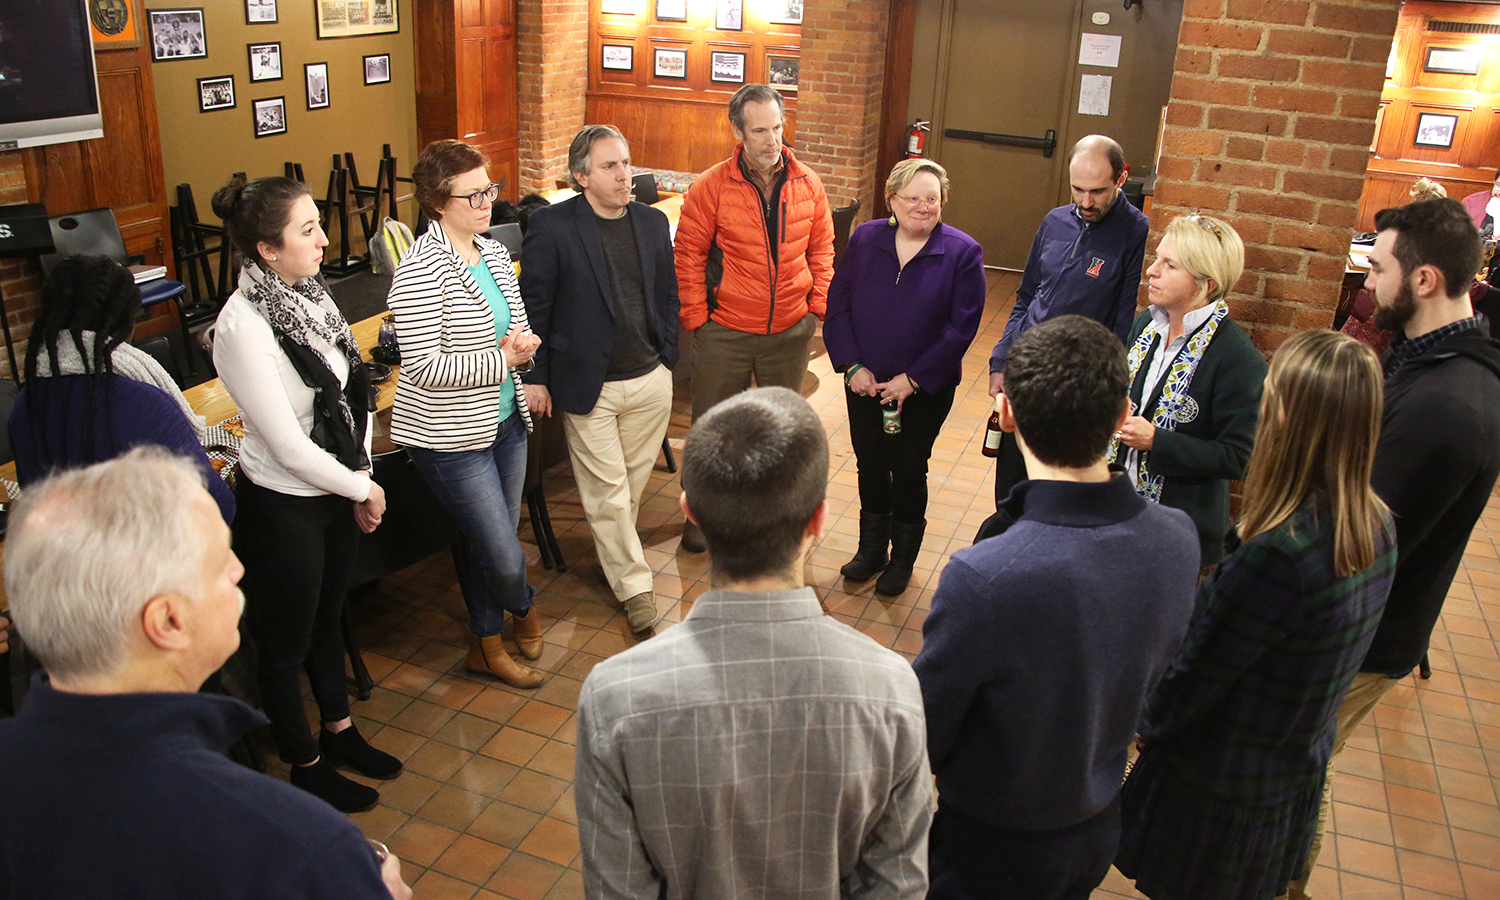 Members of the executive committees of the Hobart Alumni Council and William Smith Alumnae Council meet with students in the Cellar Pub.